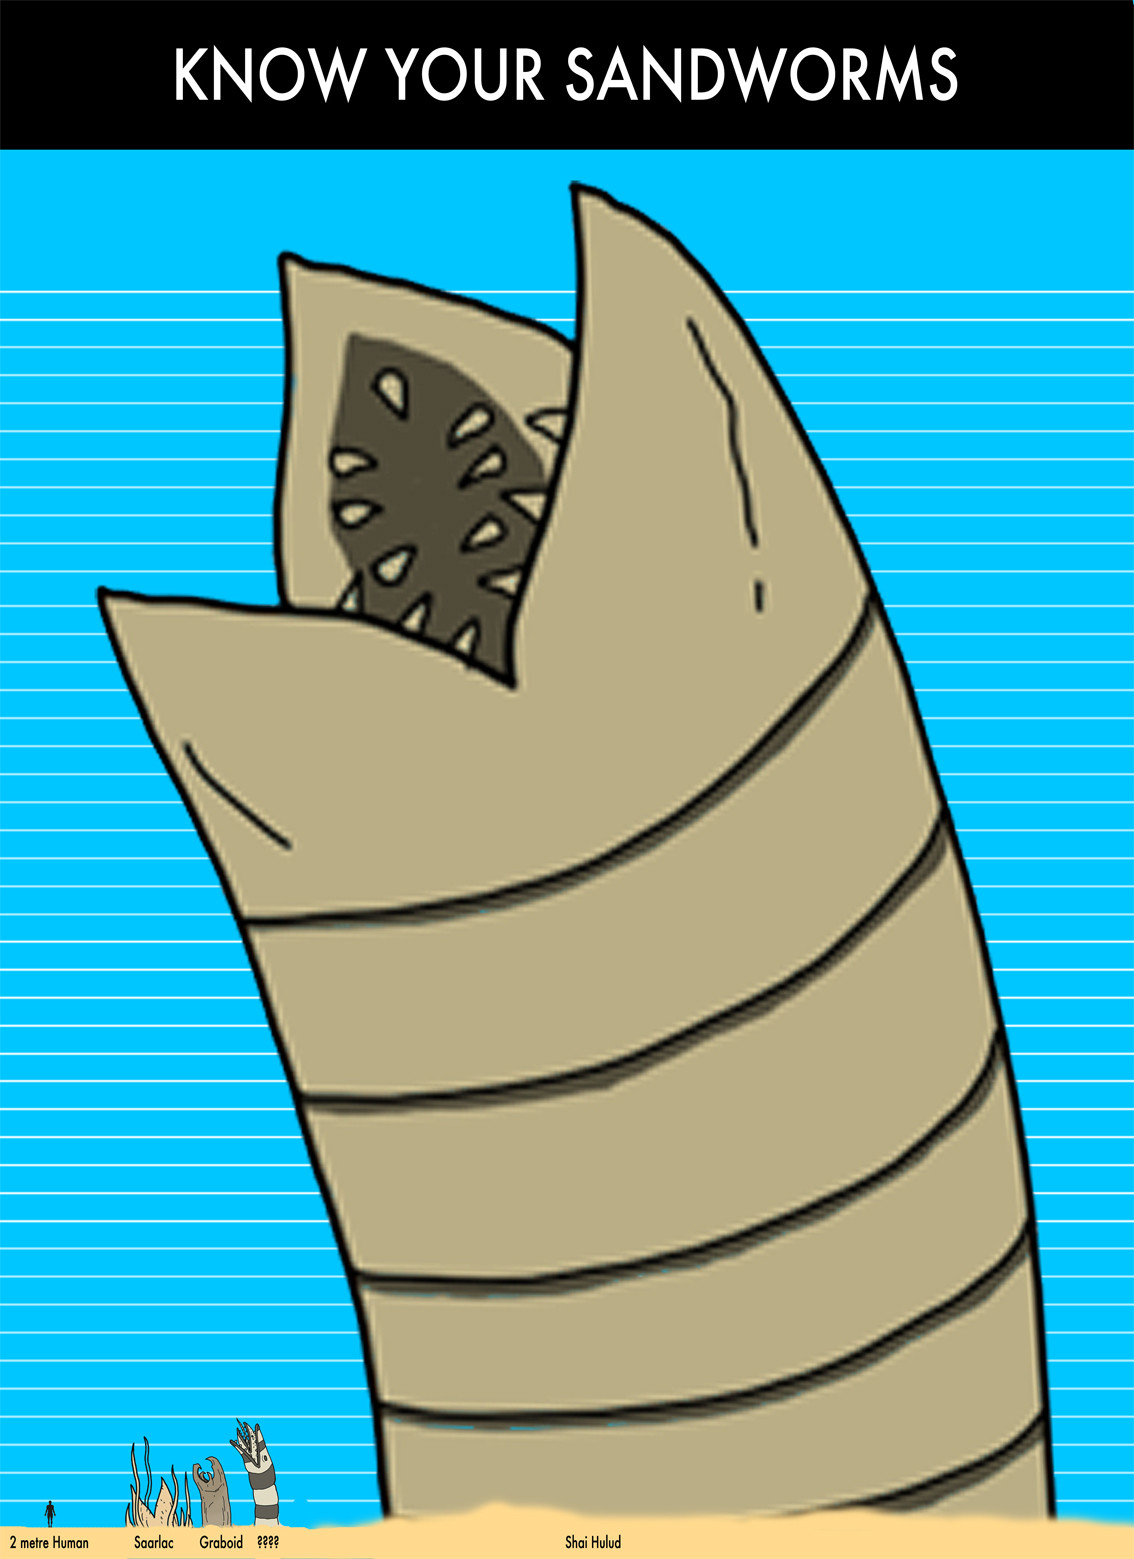 Know Your Sandworms Chart